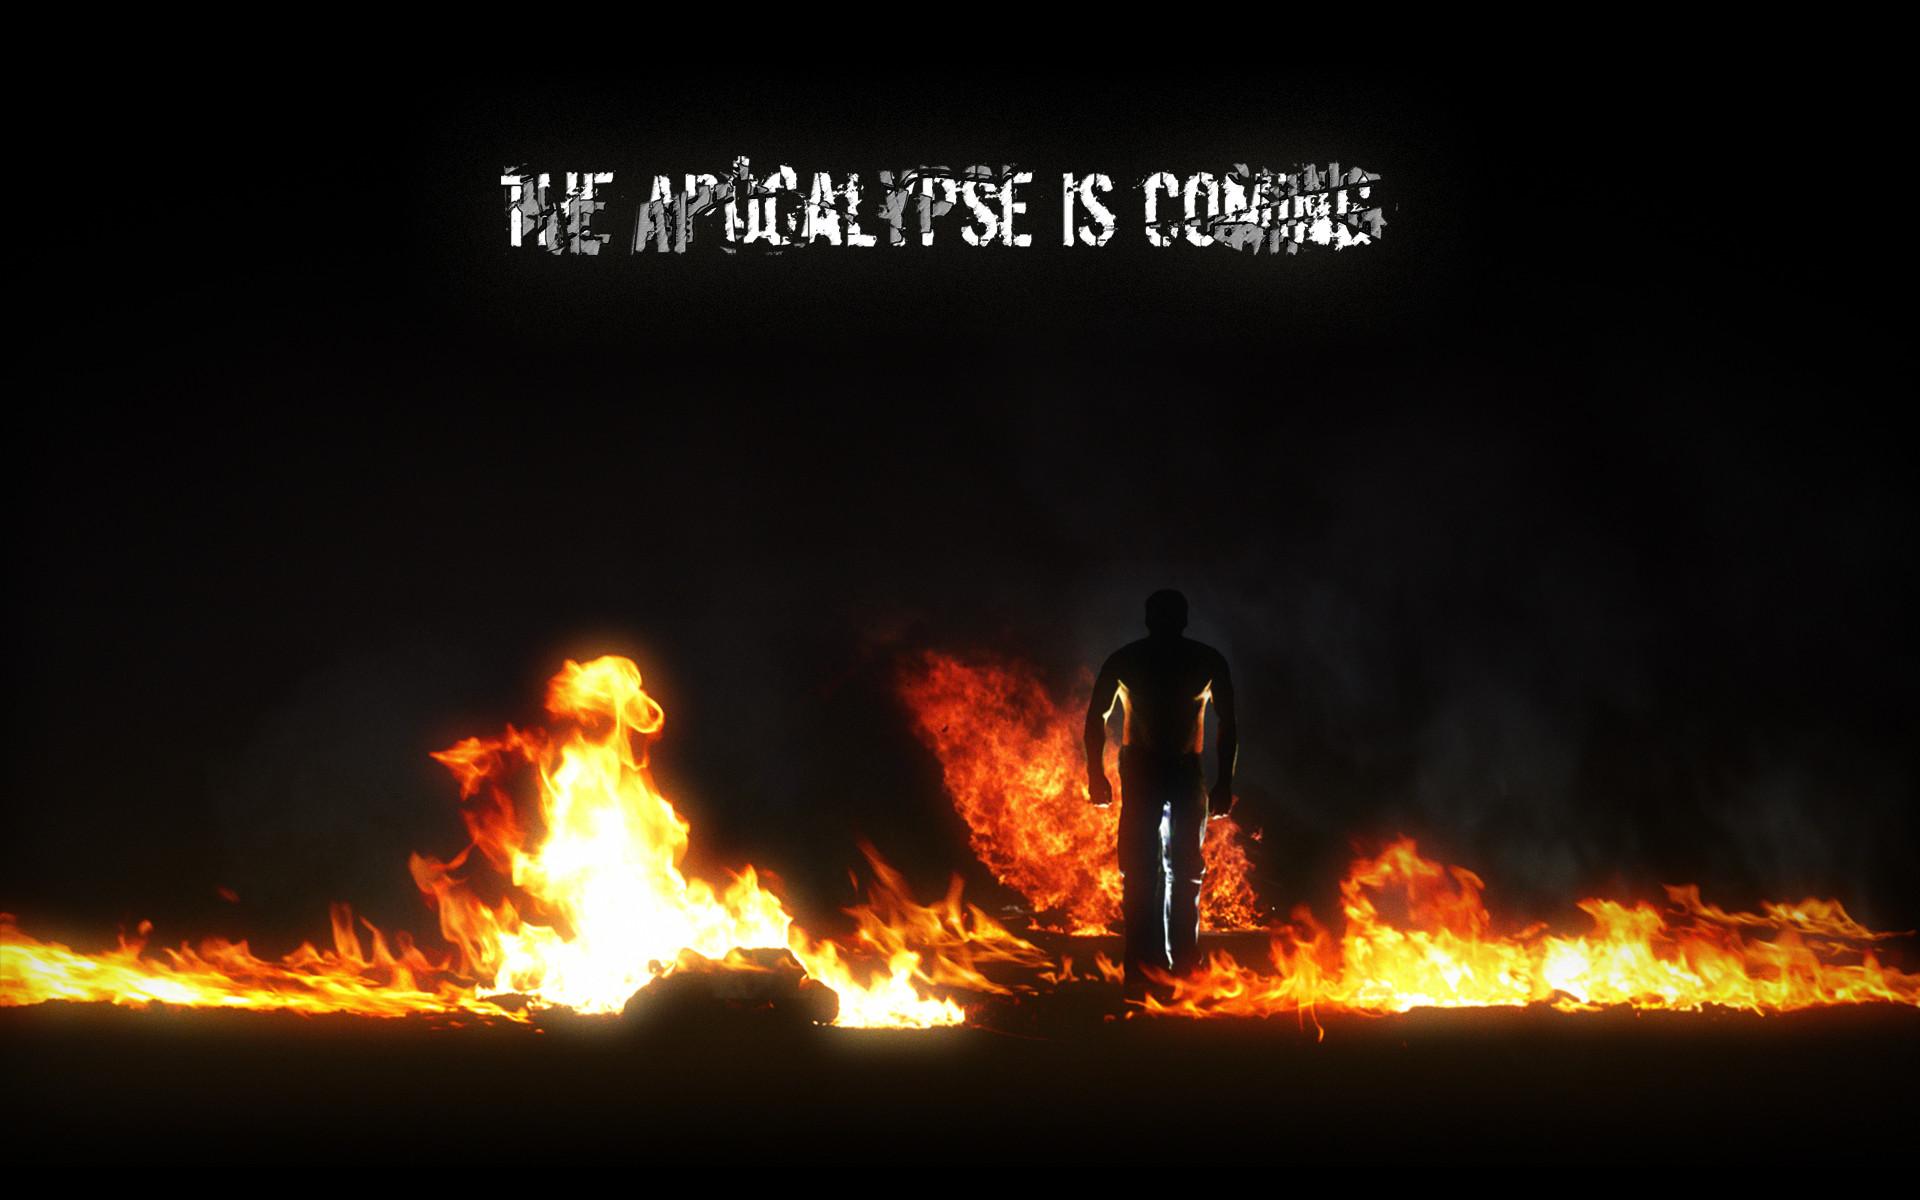 Zombie Apocalypse Wallpaper 1 by Soulburned Zombie Apocalypse Wallpaper 1  by Soulburned